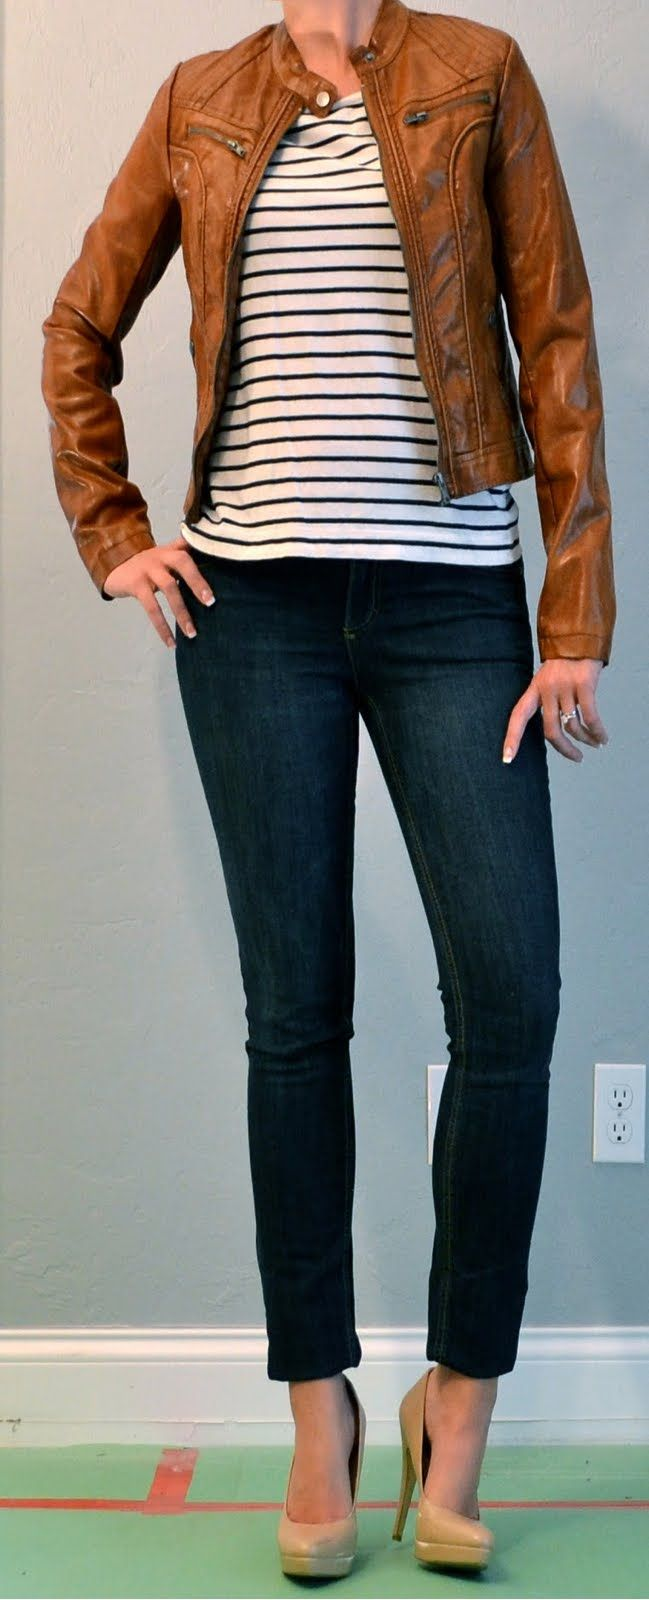 Leather jacket yellow stripe - Outfit Post Jean Skinnies Striped Top Tan Pleather Jacket Outfit Posts Dynamic